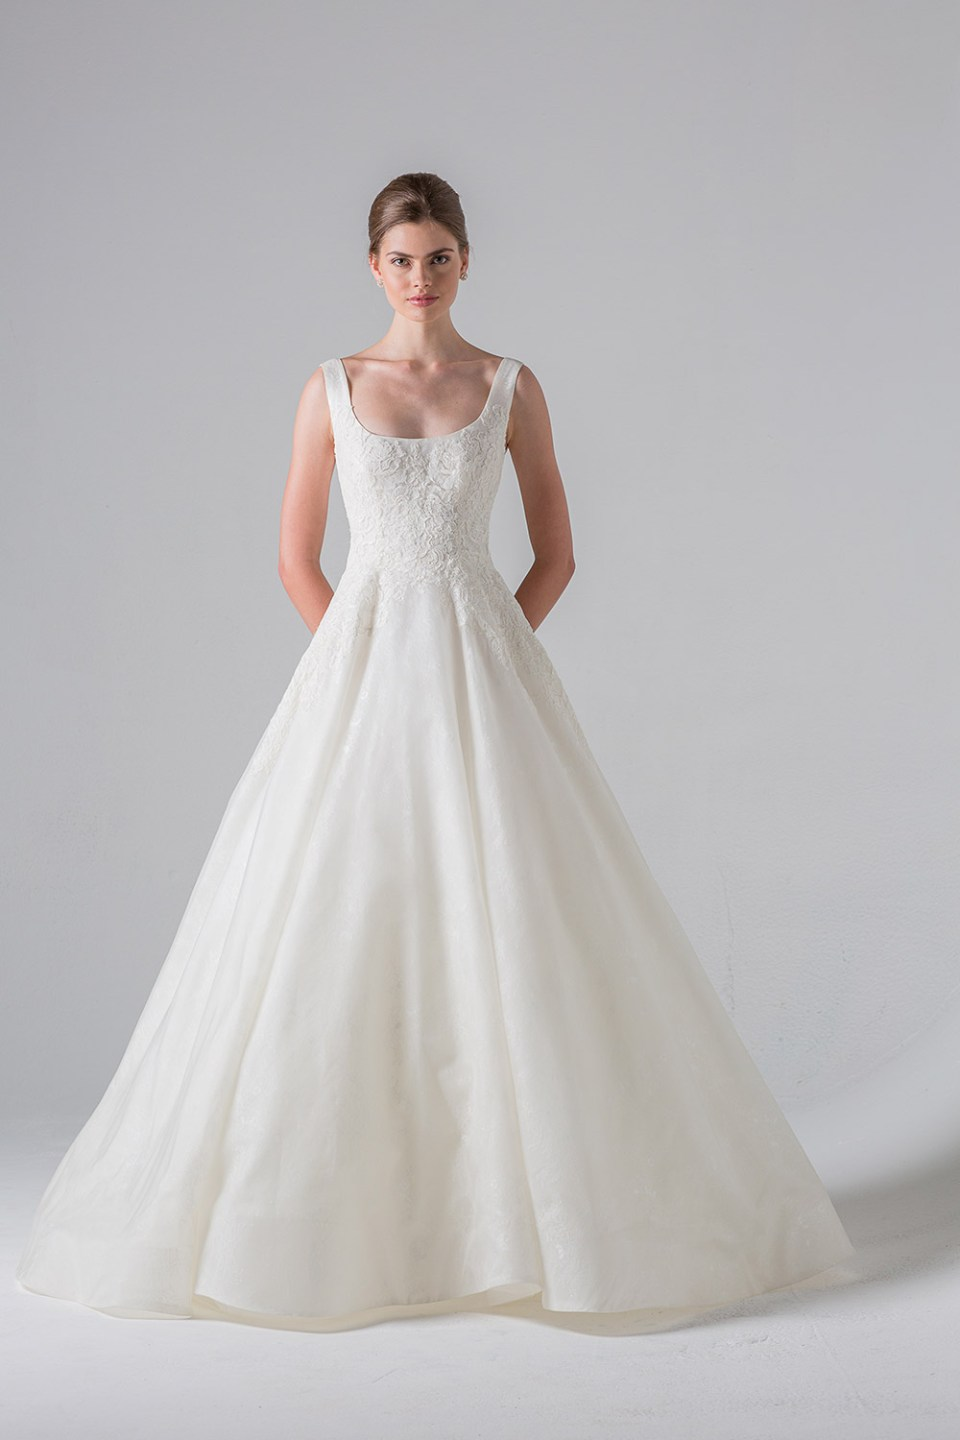 Monceau - Anne Barge Couture Spring 2016 Collection. www.theweddingnotebook.com